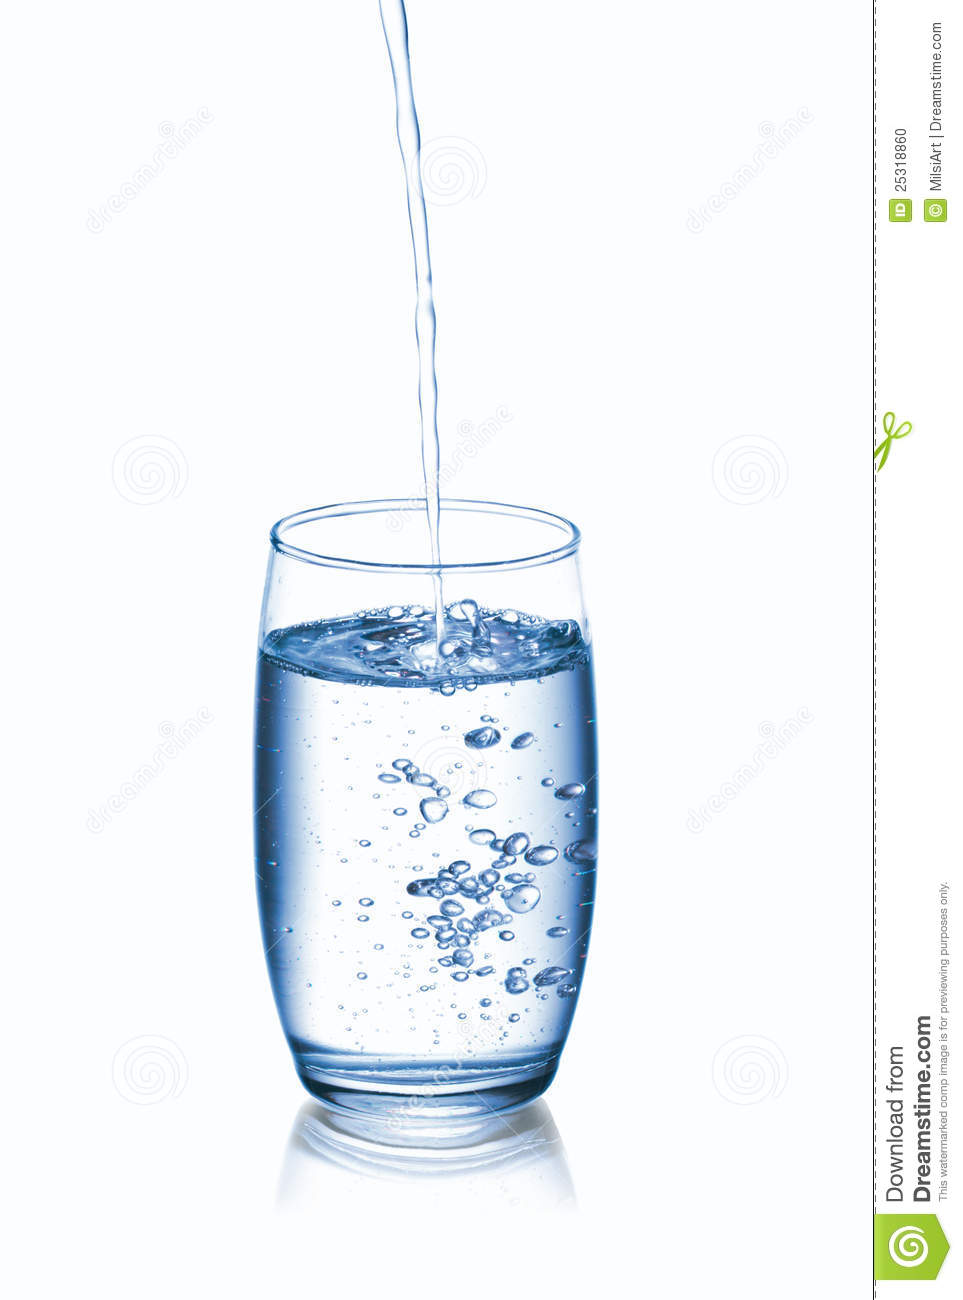 Pouring Water Into Glass Stock Photo - Image: 25318860